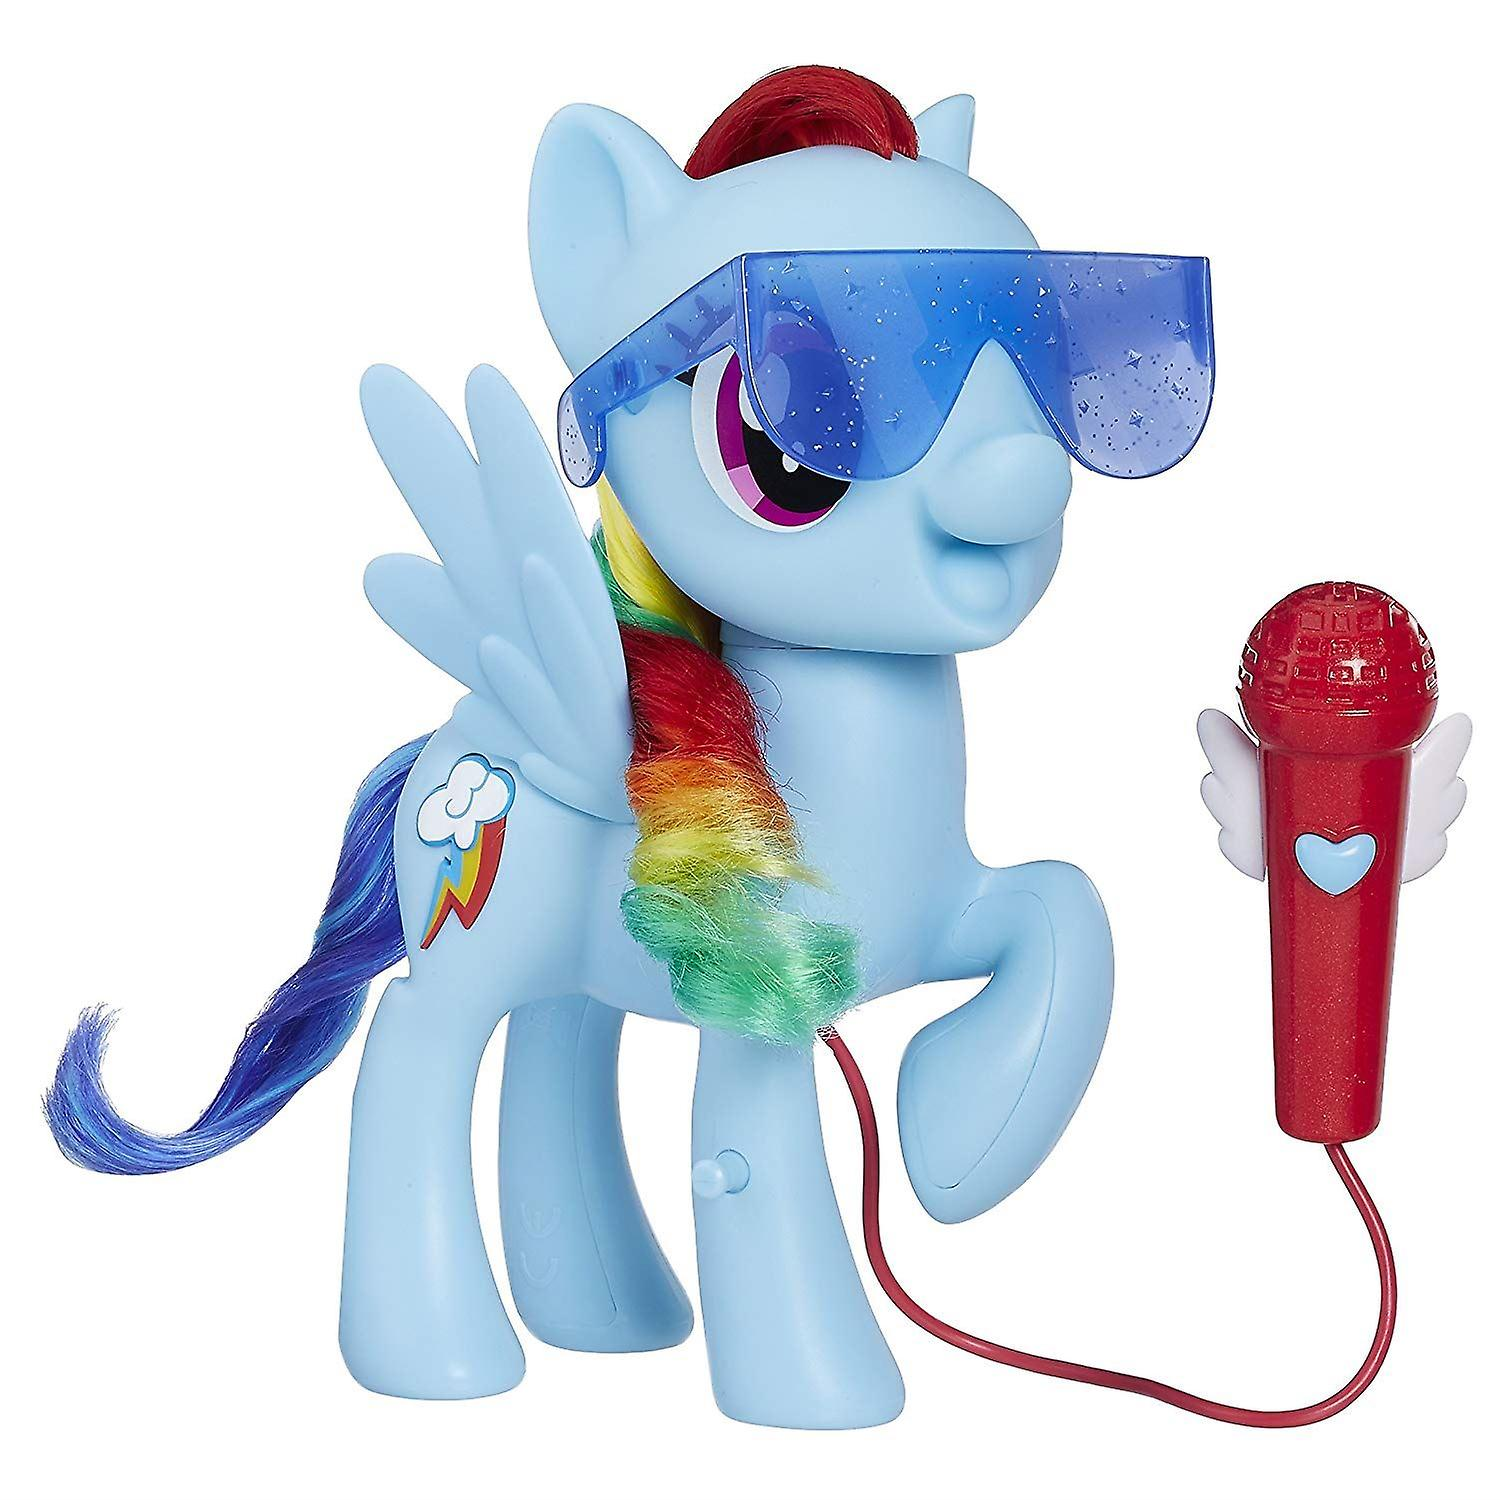 My Little Pony E1975EF1 Singing Rainbow Dash Model, Multi-Colour